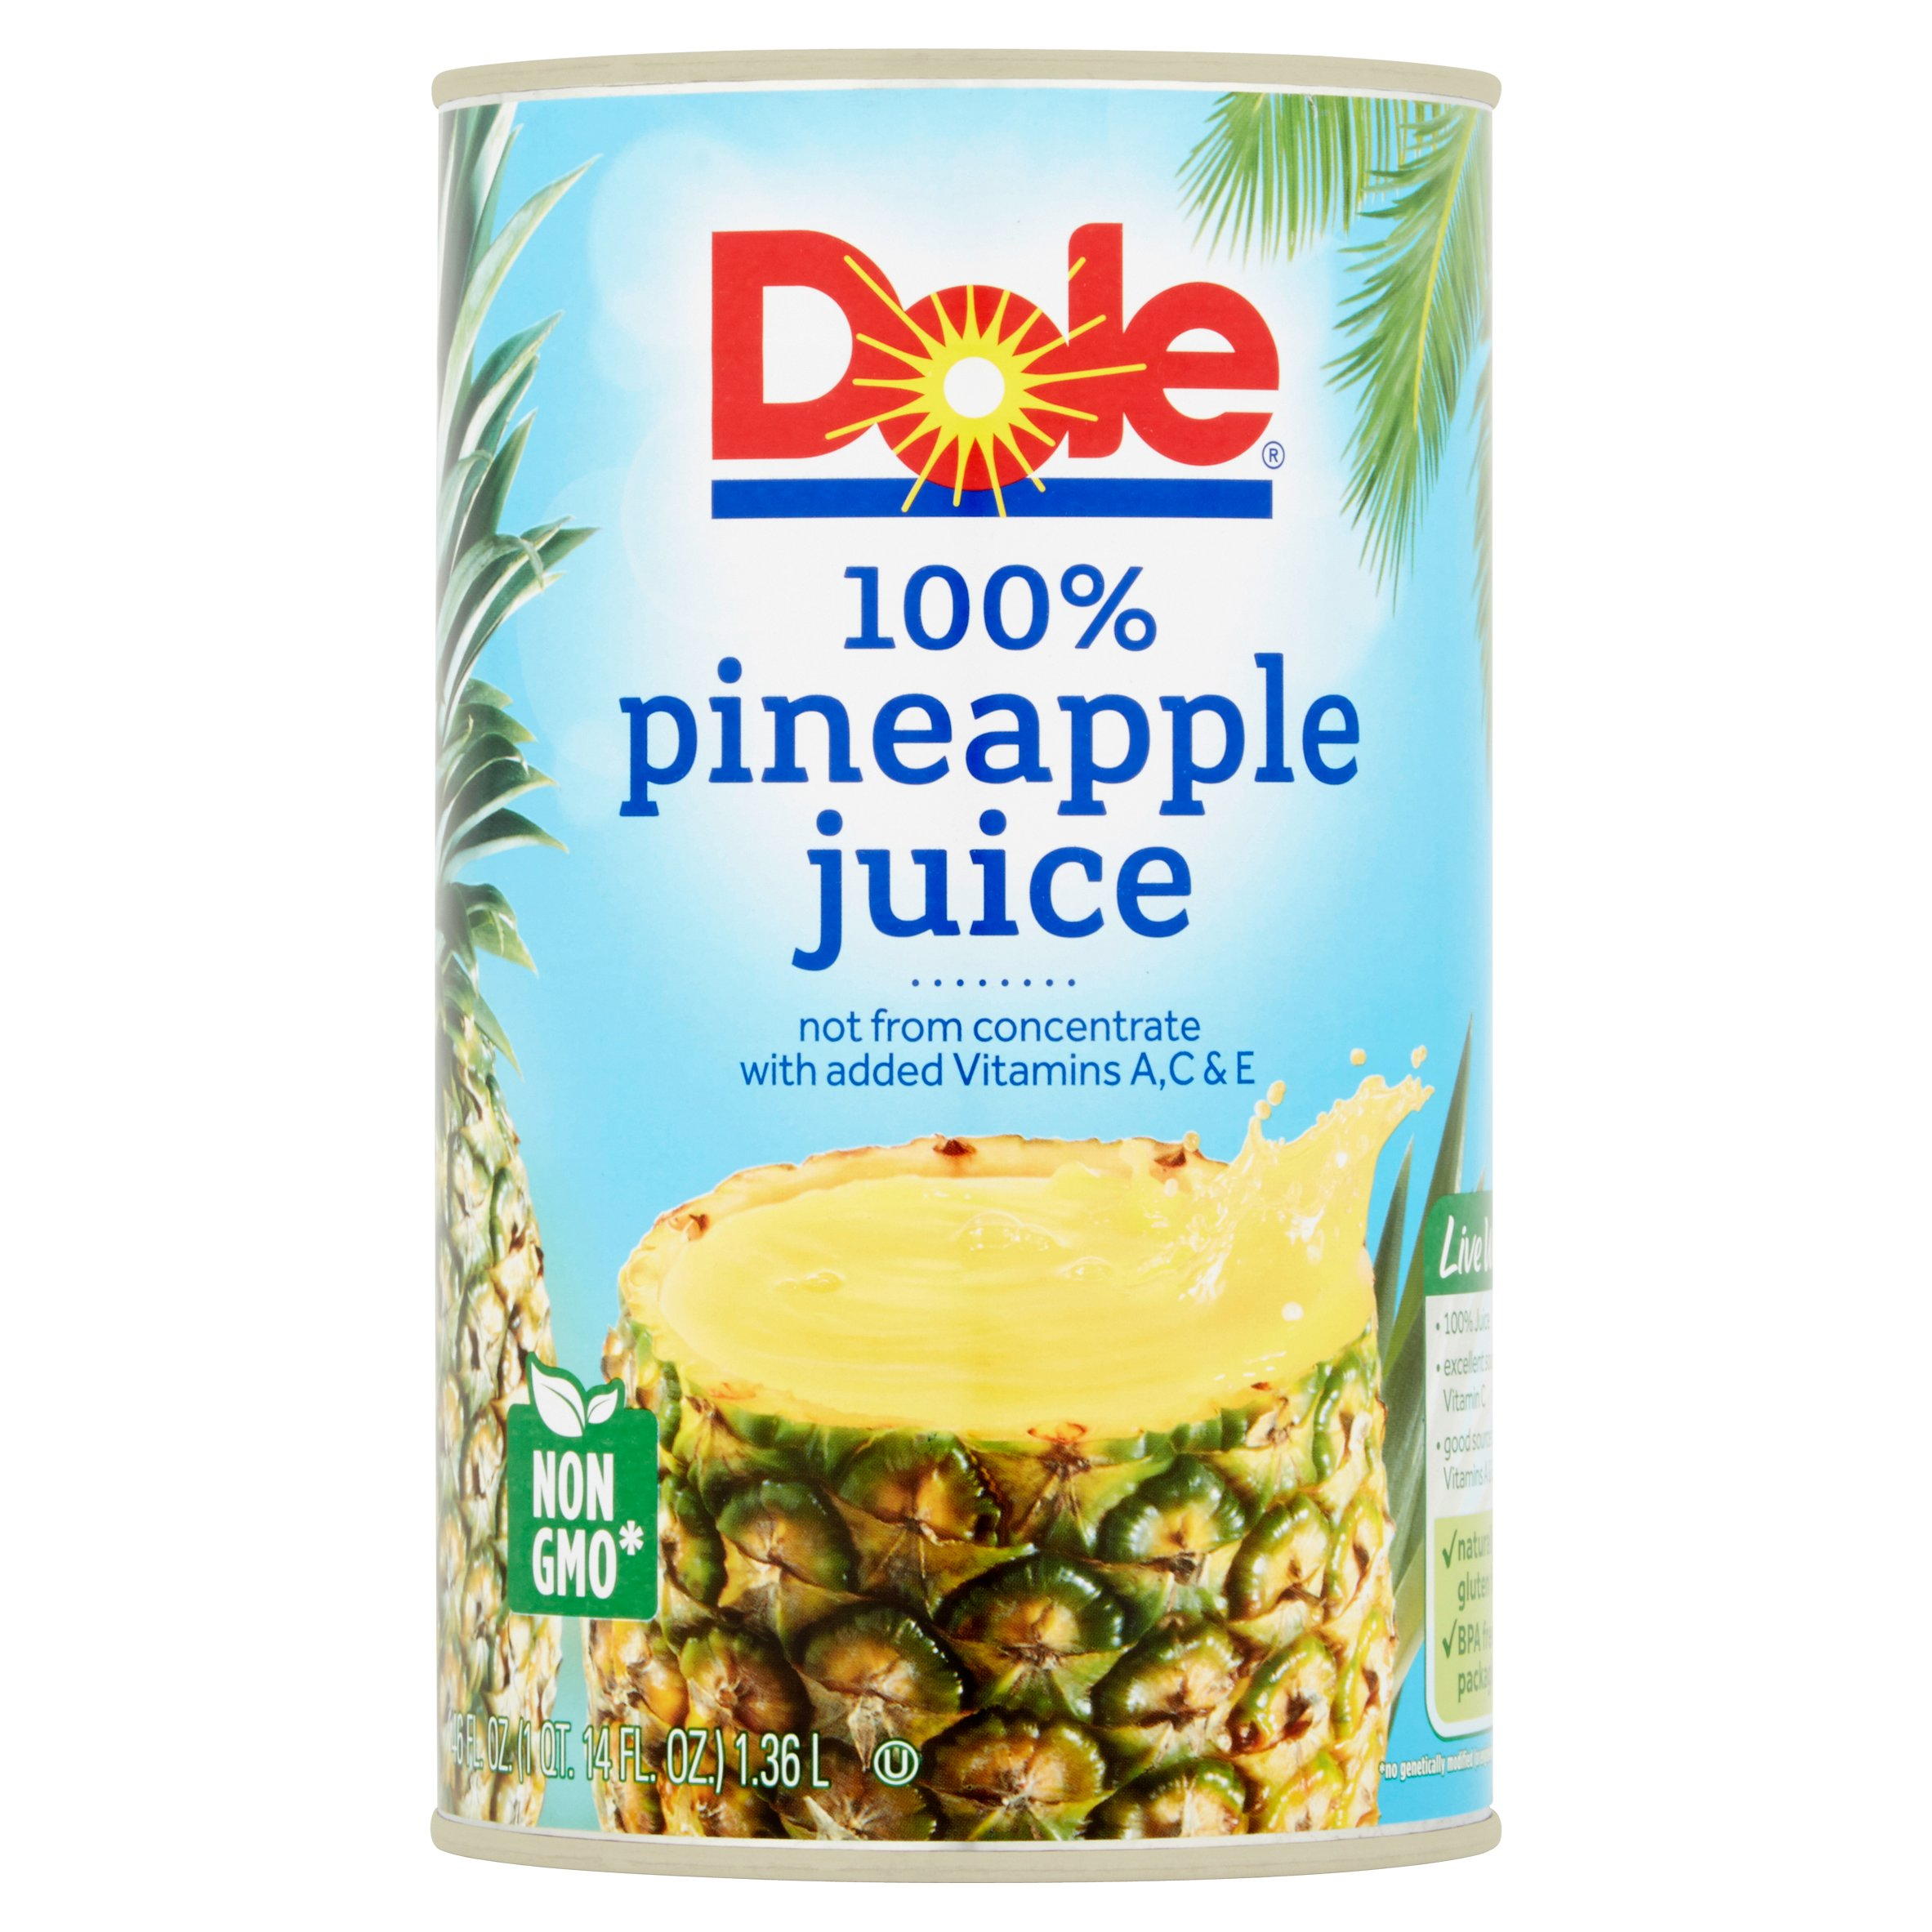 Dole 100% Pineapple Juice, 46 fl. oz. Can by Dole Packaged Foods, LLC